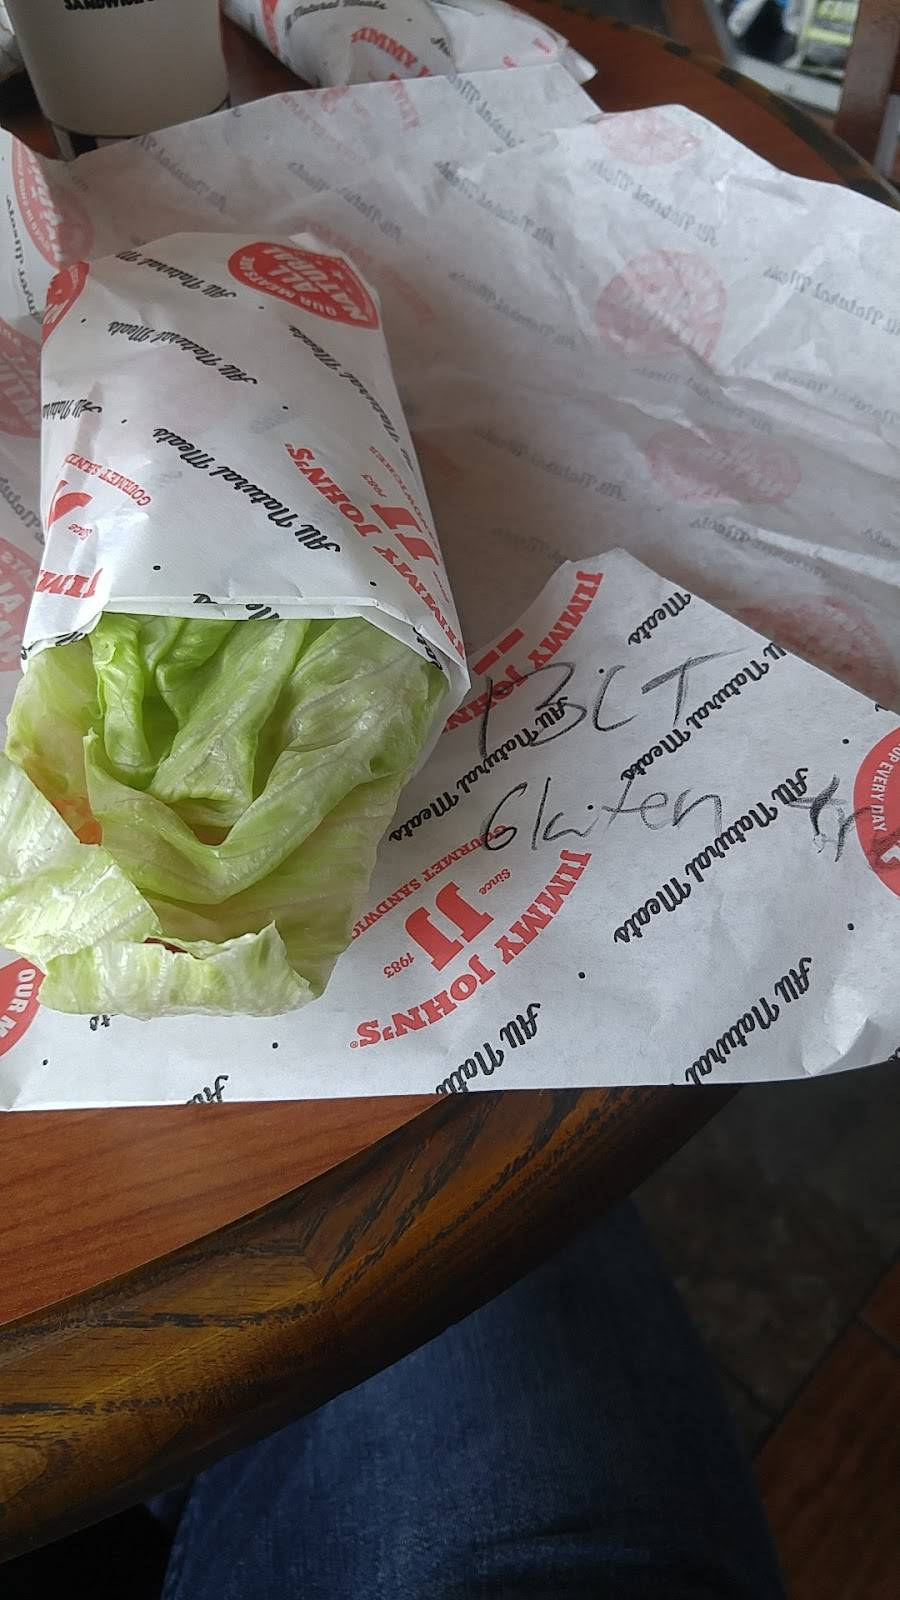 Jimmy Johns   meal delivery   9432 WI-16, Onalaska, WI 54650, USA   6087814240 OR +1 608-781-4240